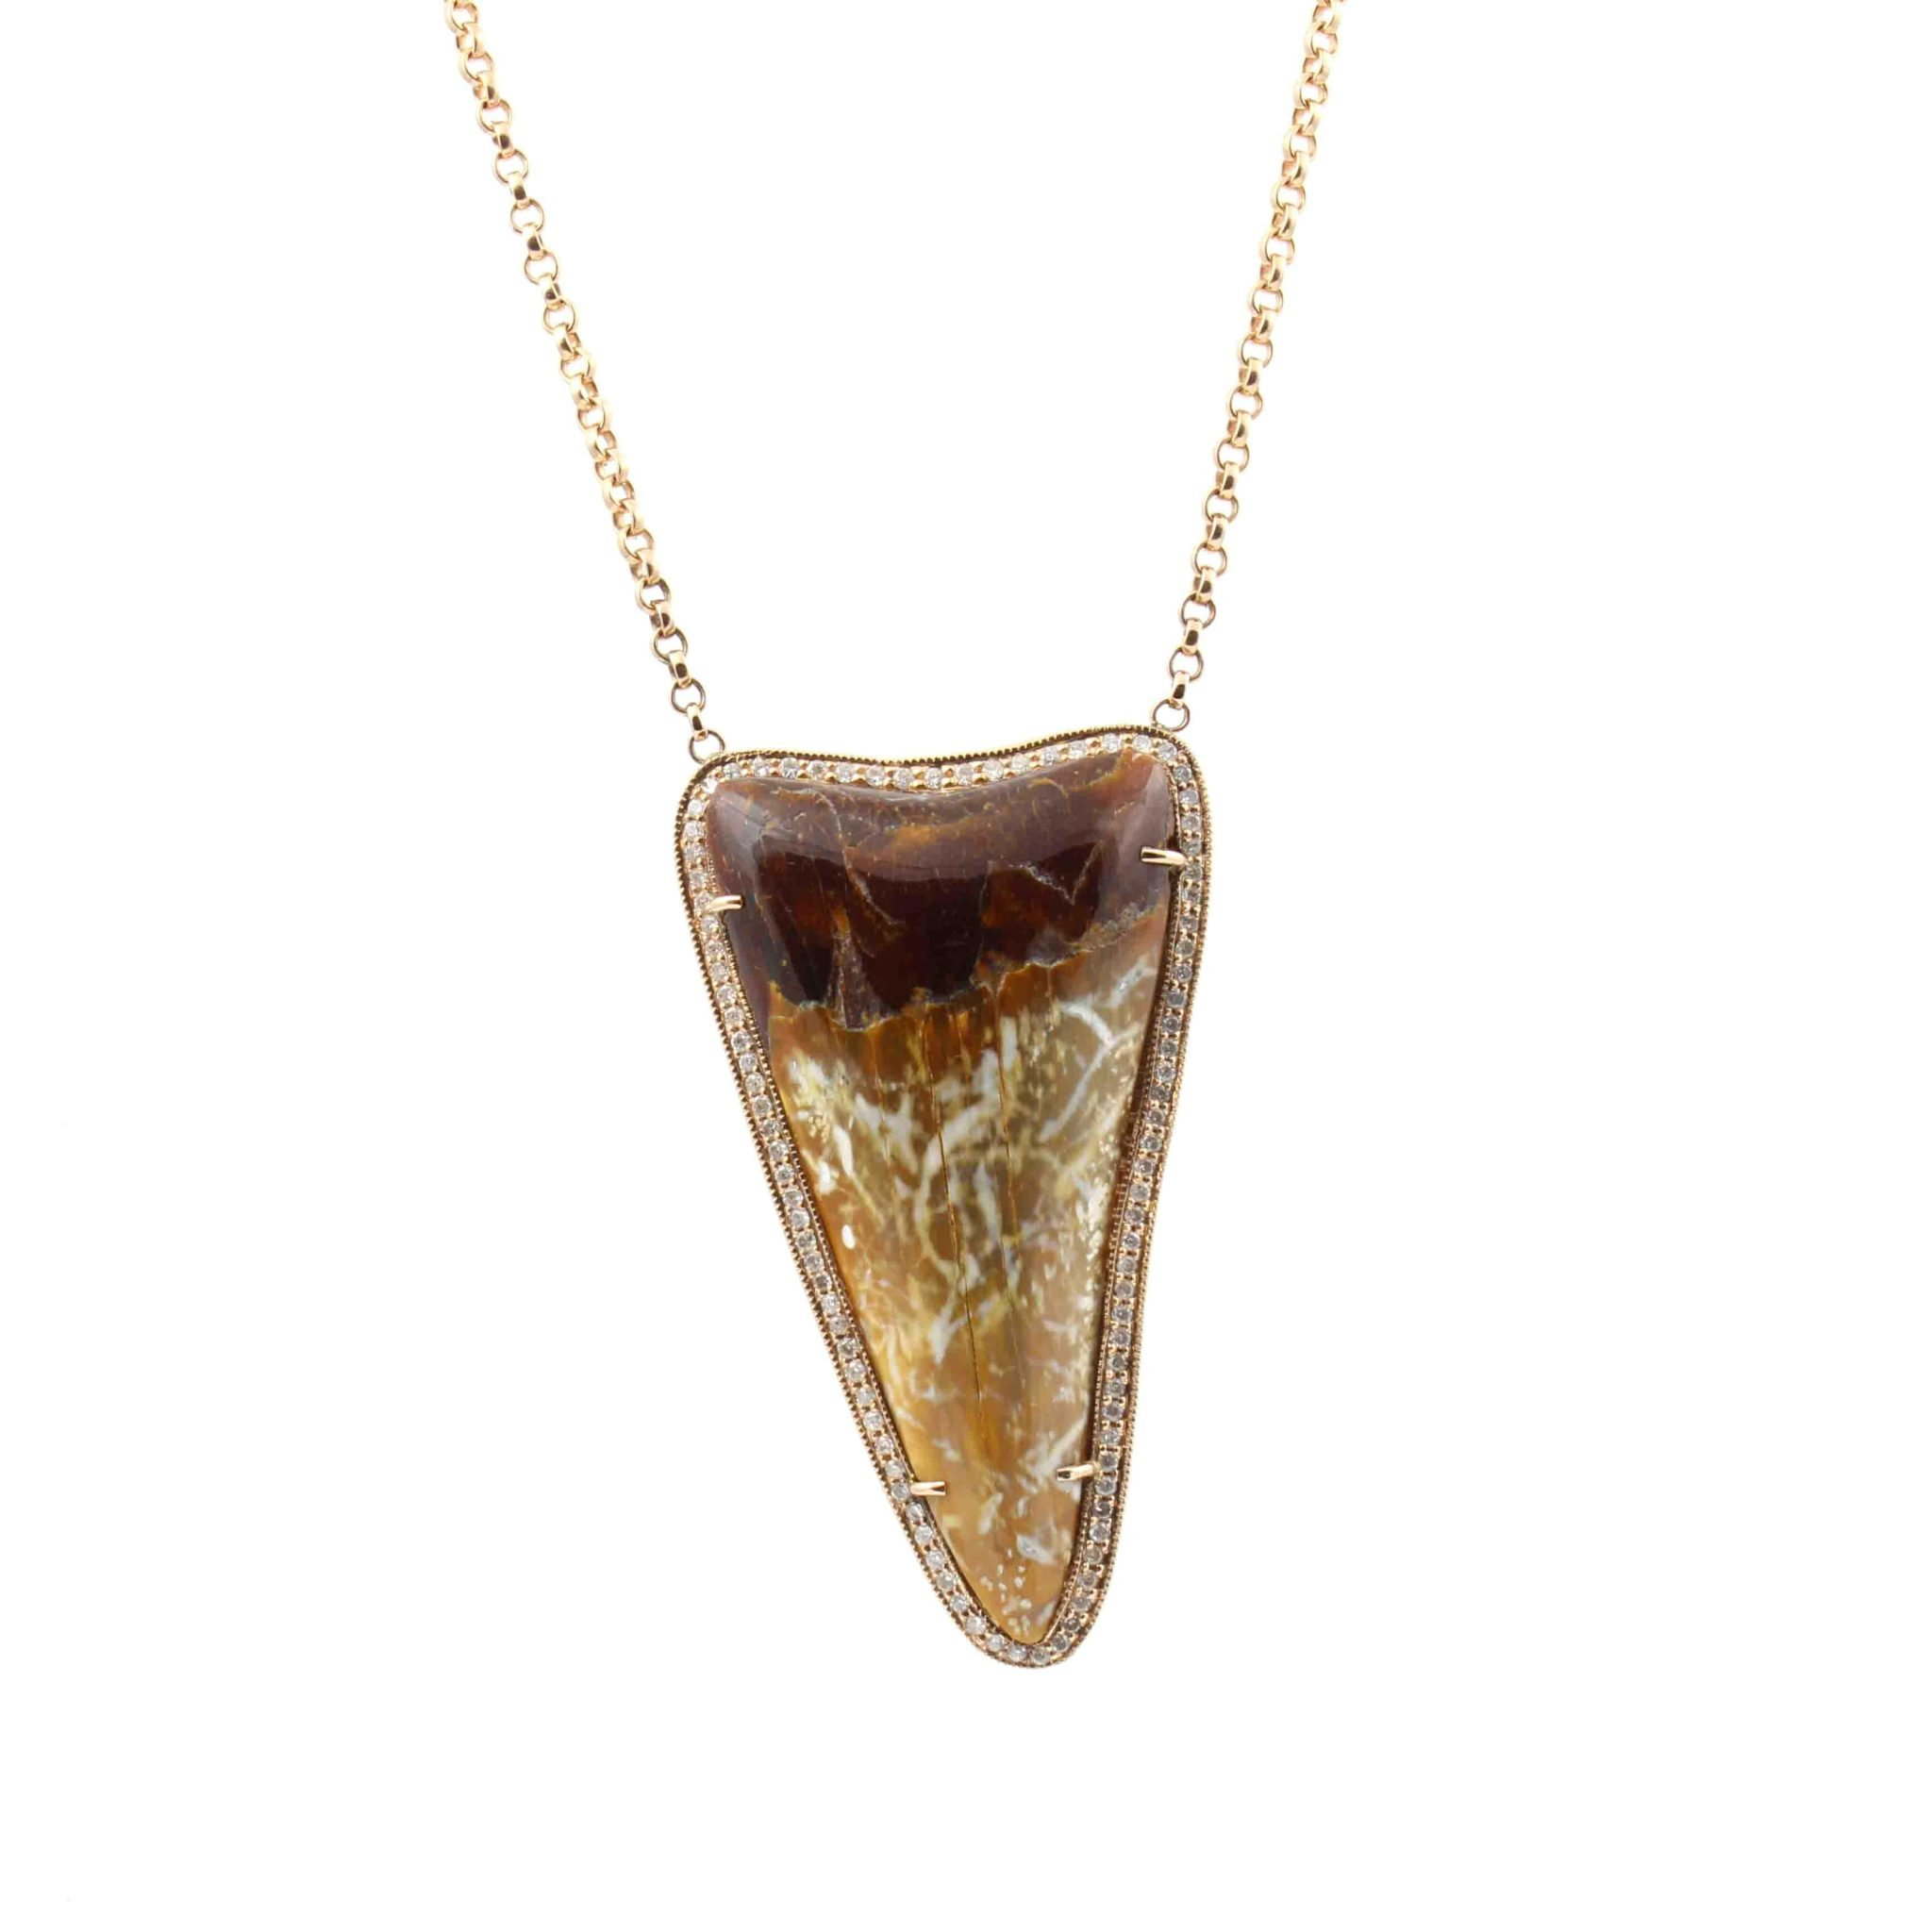 com tiger for taurus carcharias necklace pendant fossils shark tooth fossil fossilera sand sale